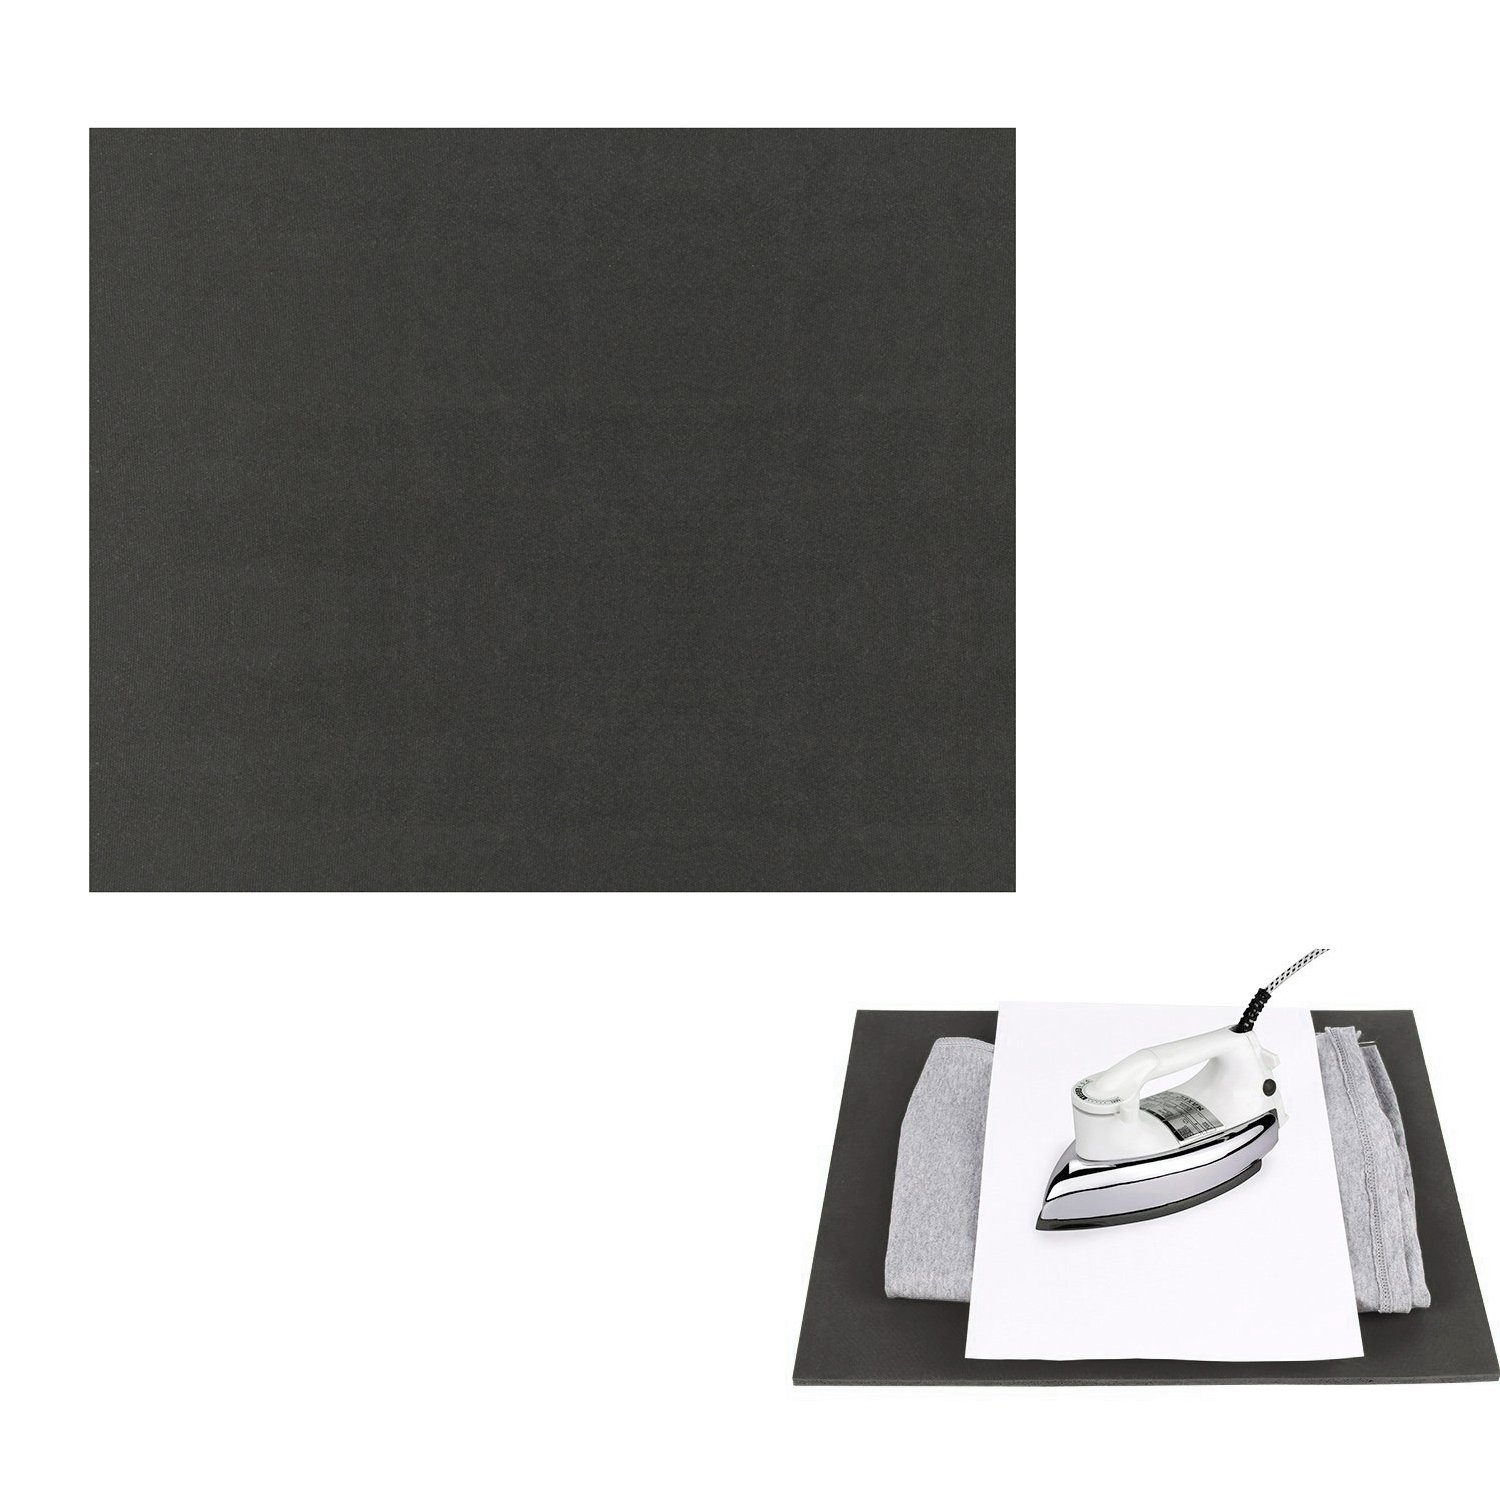 "RUSPEPA 12"" ×15"" Silicone Pad, Flat Heat Press Replacement(Black)"